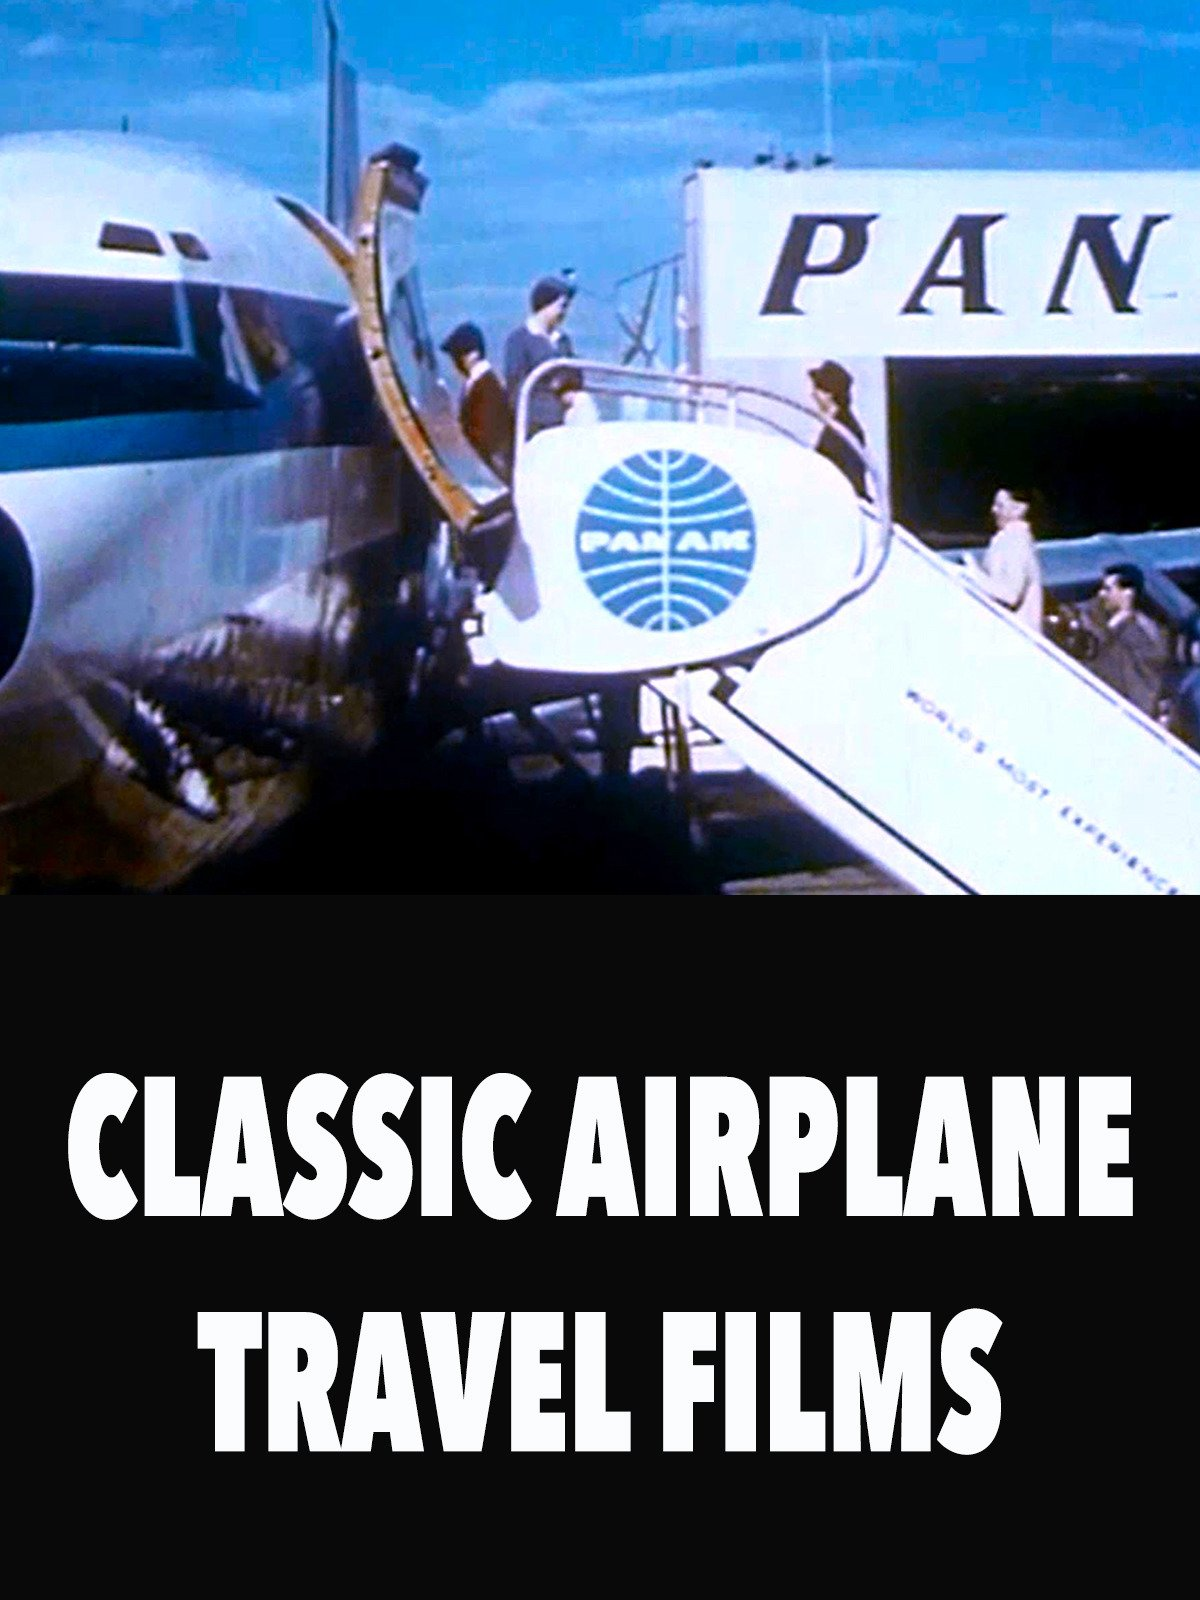 Classic Airplane Travel Films